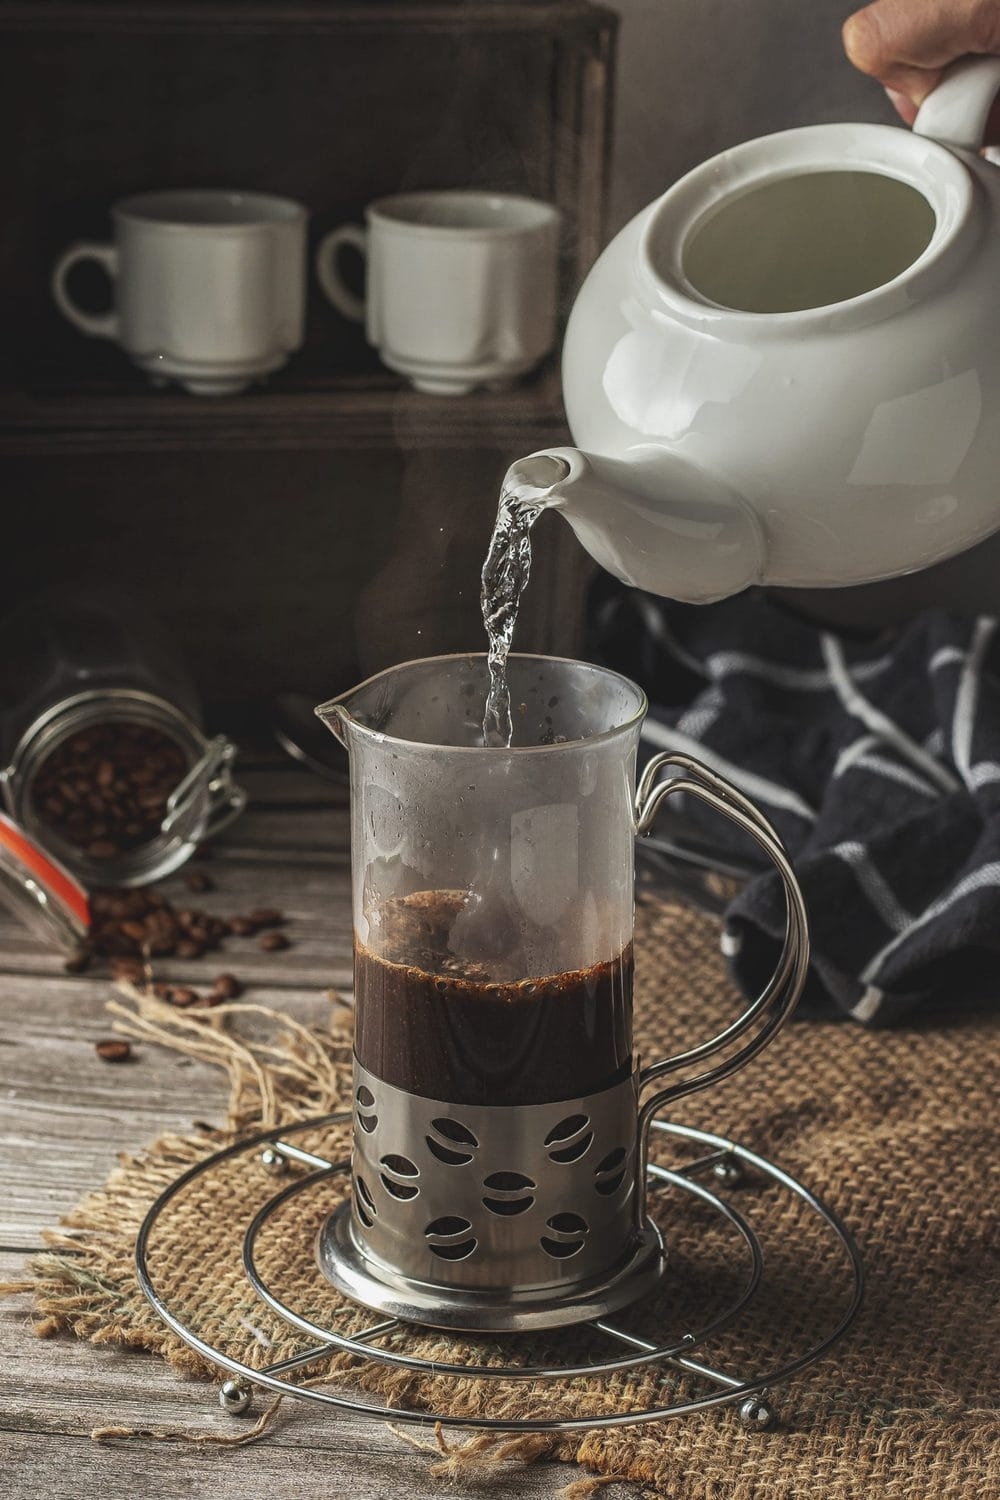 Pouring water over the coffee bed